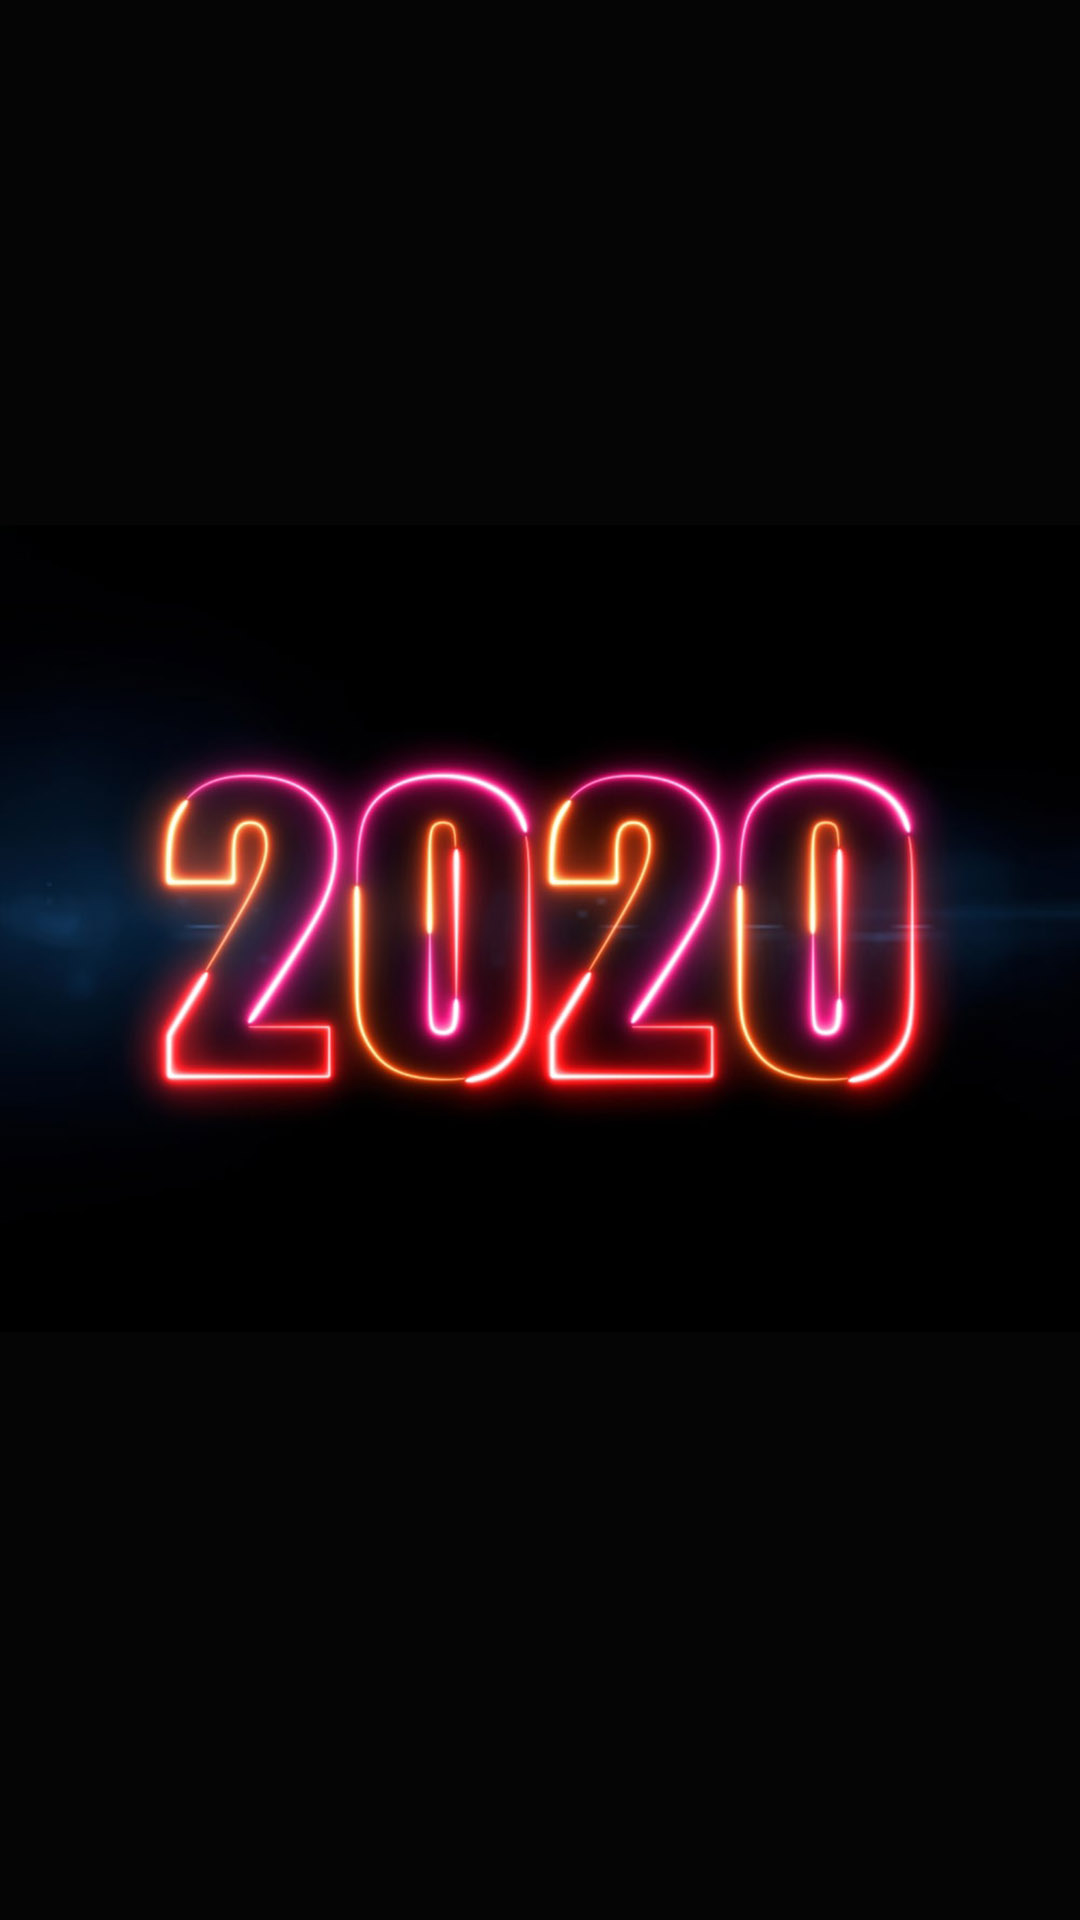 2020 New Year iPhone Wallpaper 1